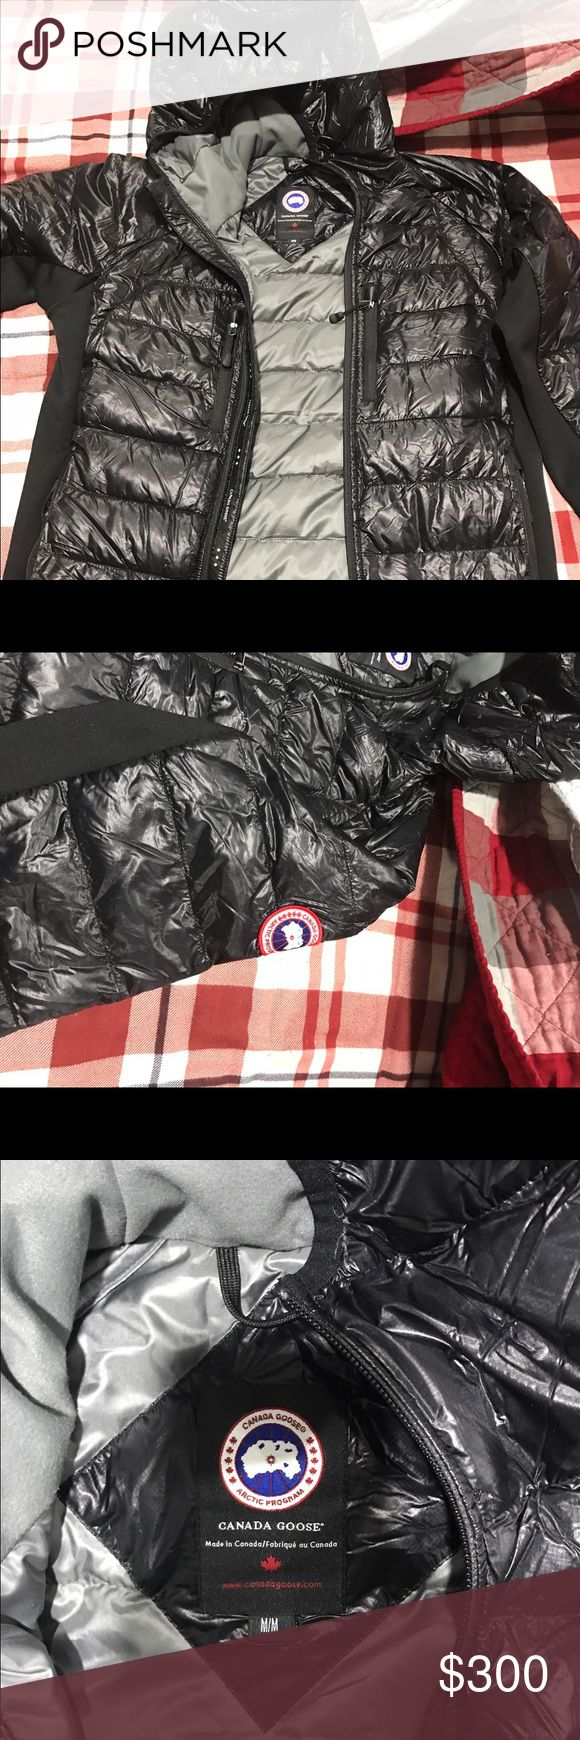 Canada Goose Down Jacket Canada Goose downjacket for sale. Size M. Never worn. Retails for over $500. Canada Goose Jackets & Coats